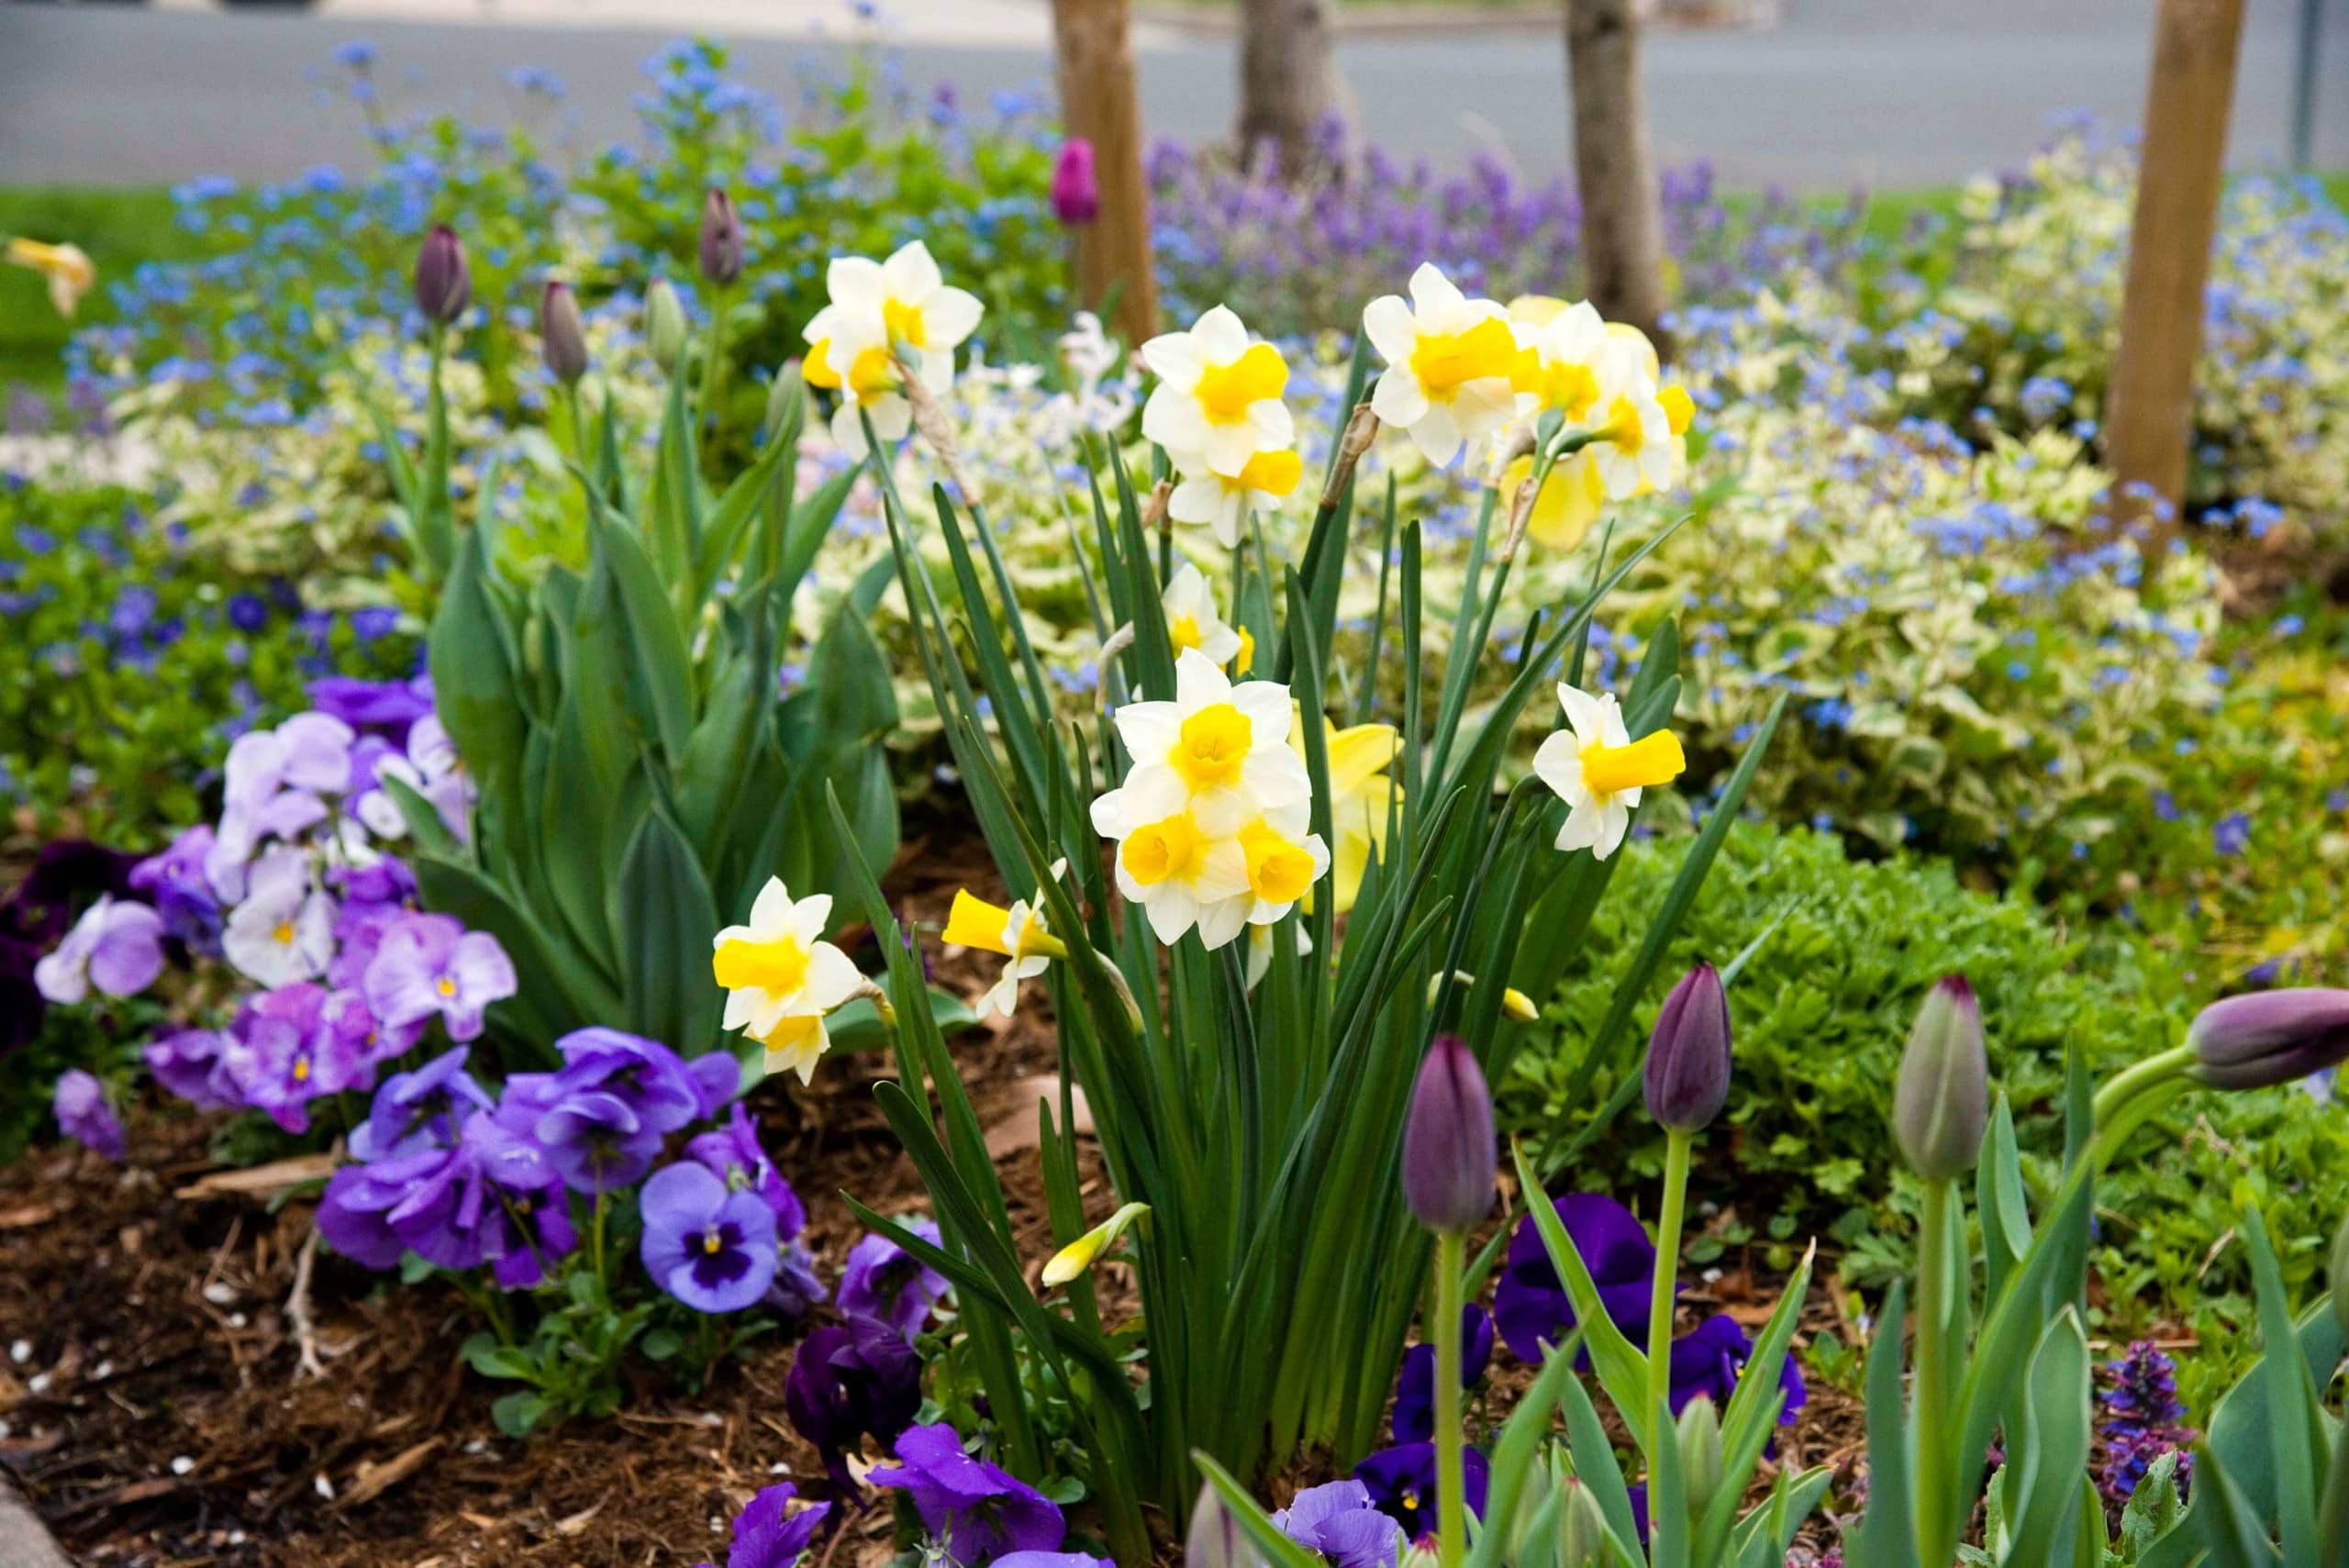 Blog Featured – It's time to plant tulips, daffodils and other bulbs for beautiful spring color.